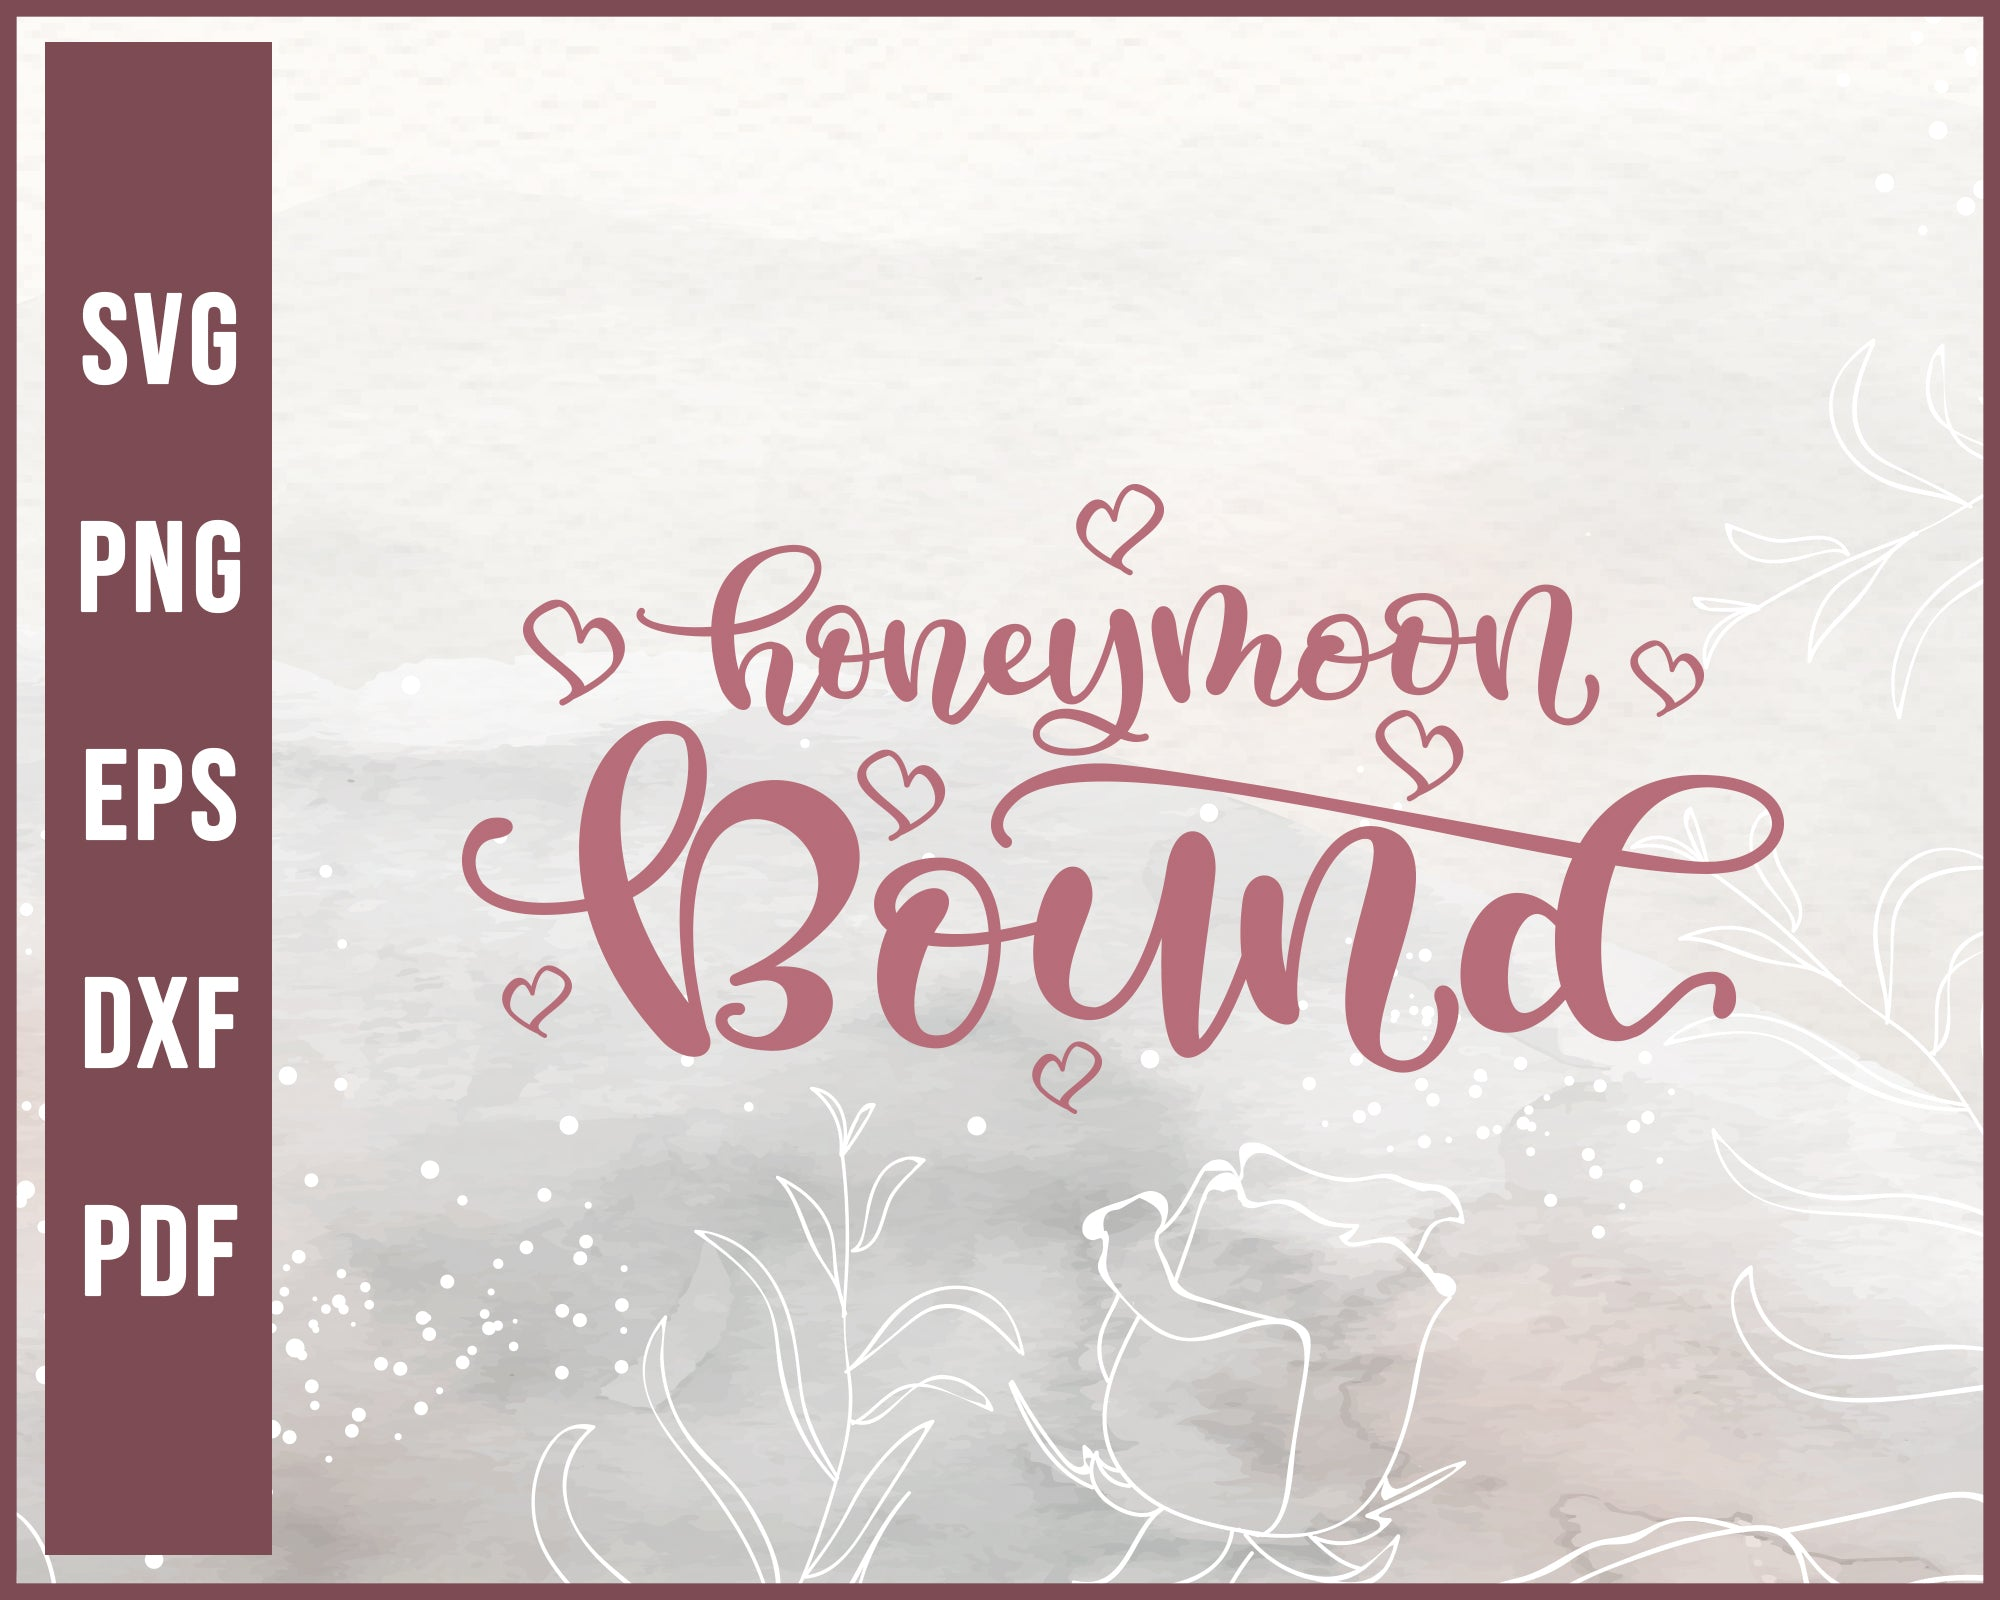 Honeymoon bound Wedding svg Designs For Cricut Silhouette And eps png Printable Files